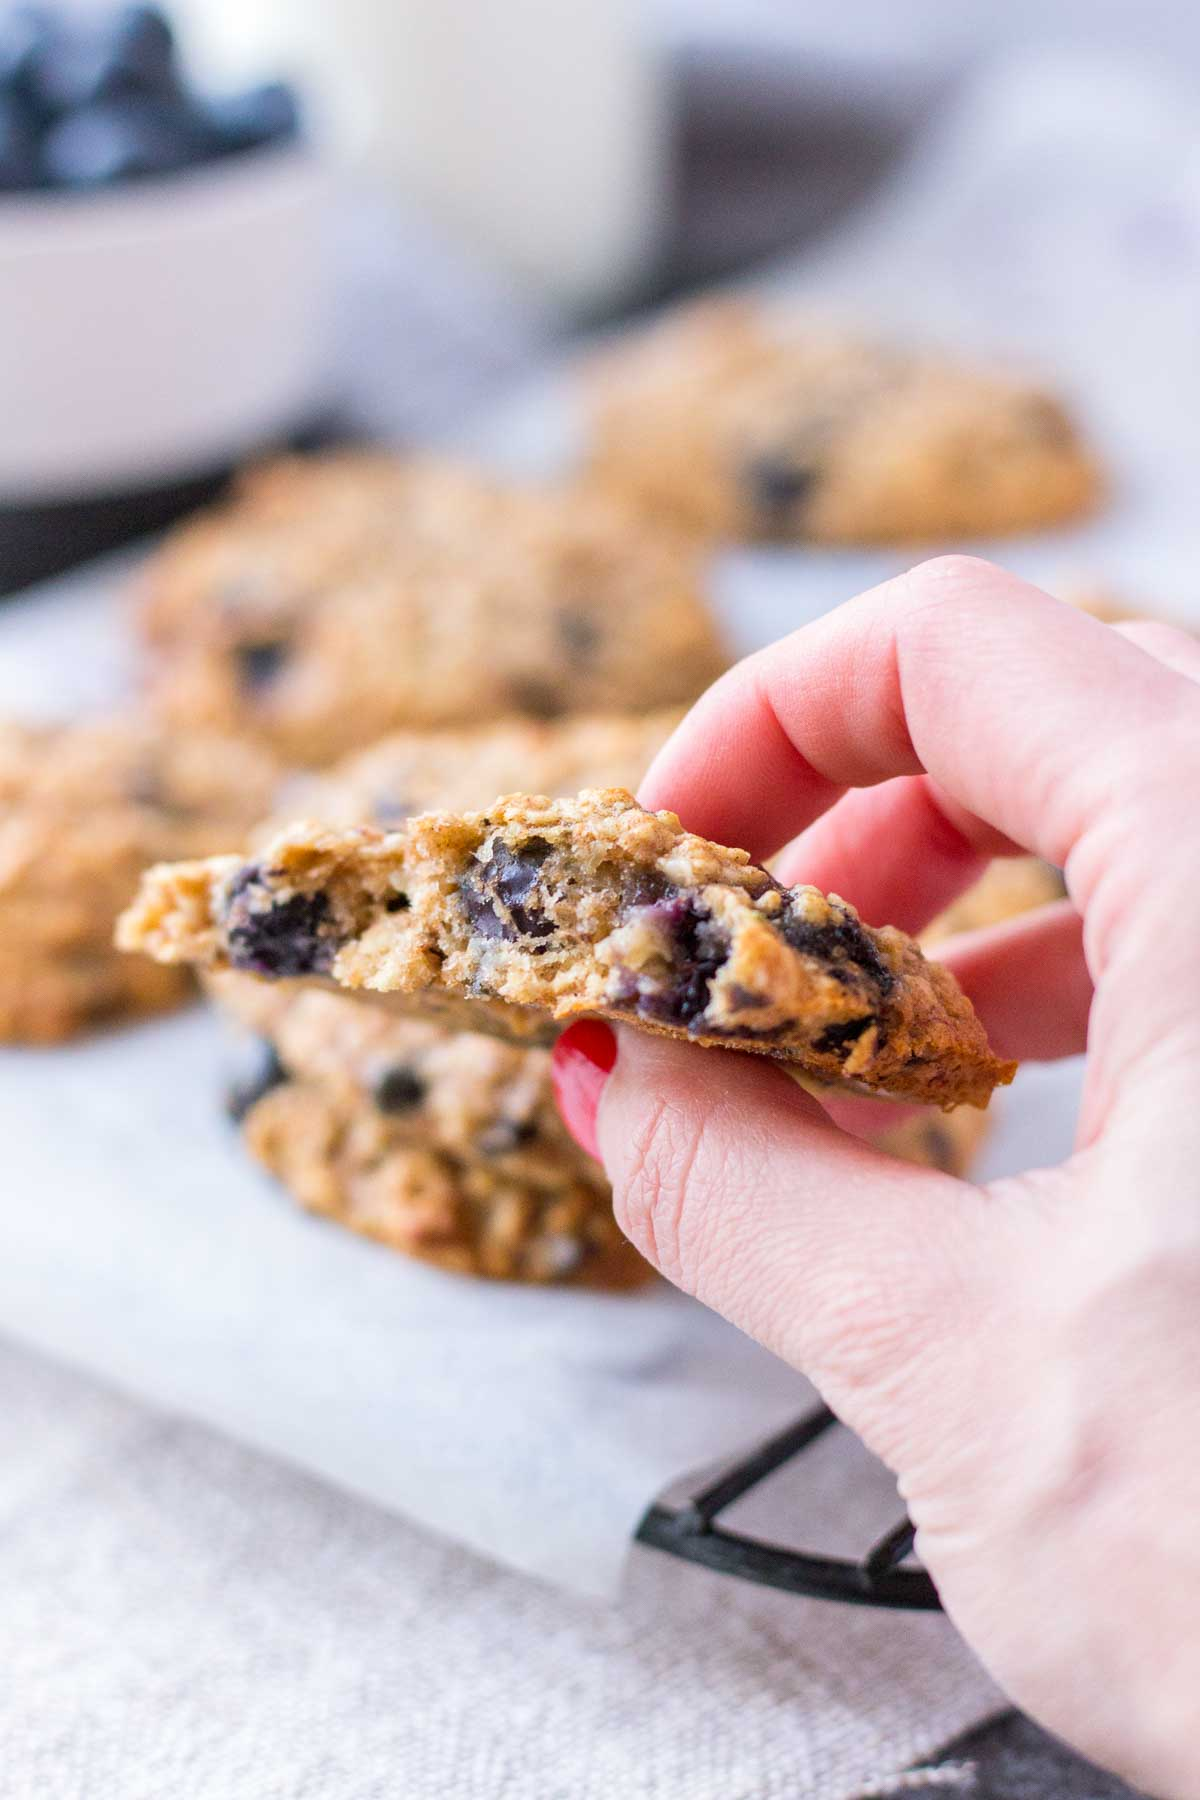 Hand holding blueberry cookie